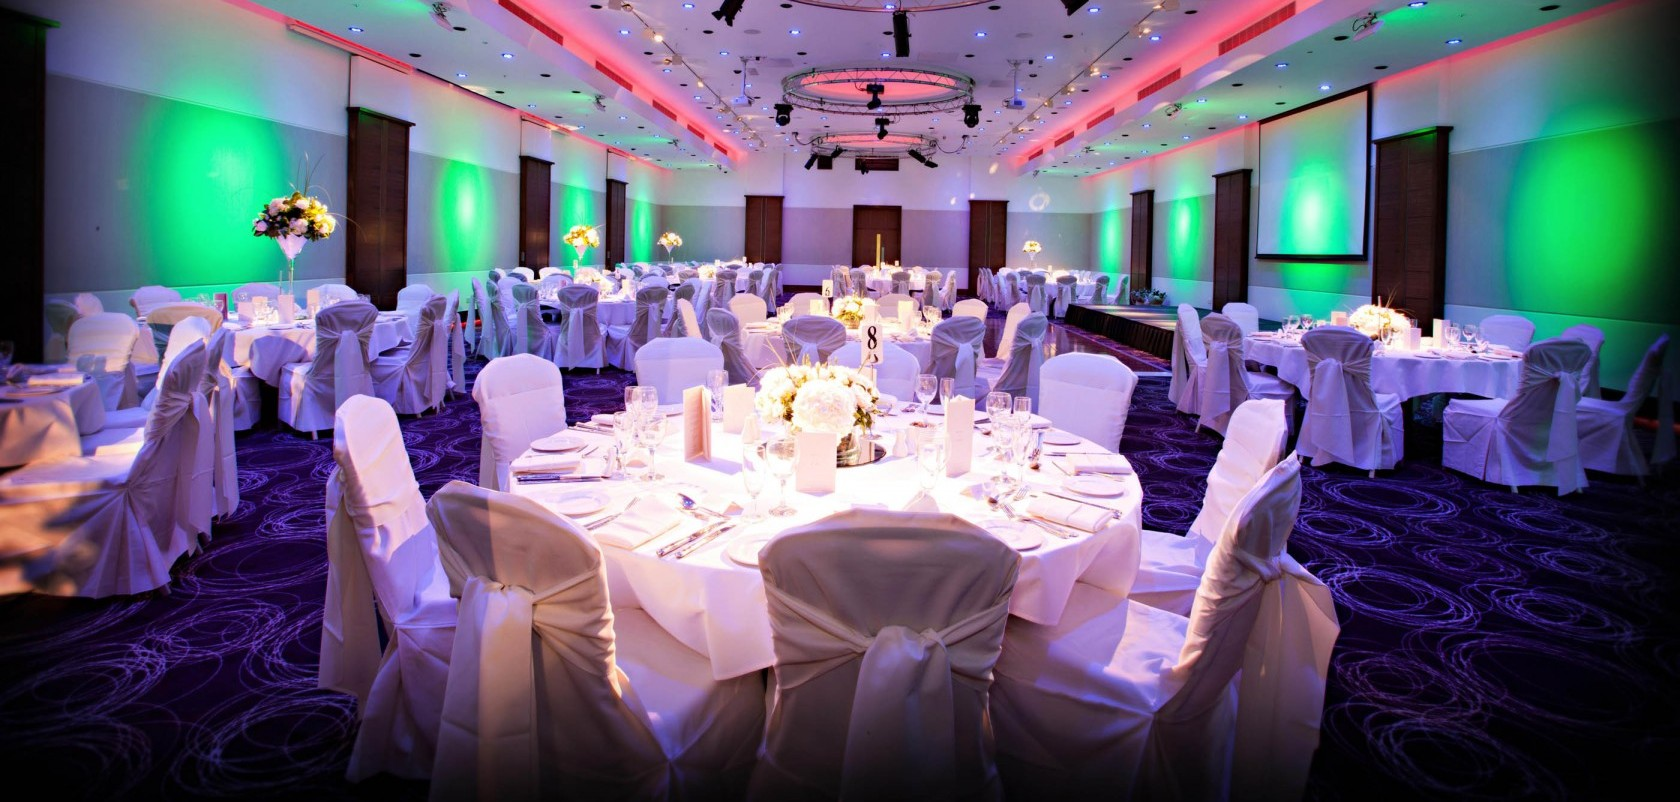 Seating Arrangements Whats The Best For Your Event Tagvenue Blog